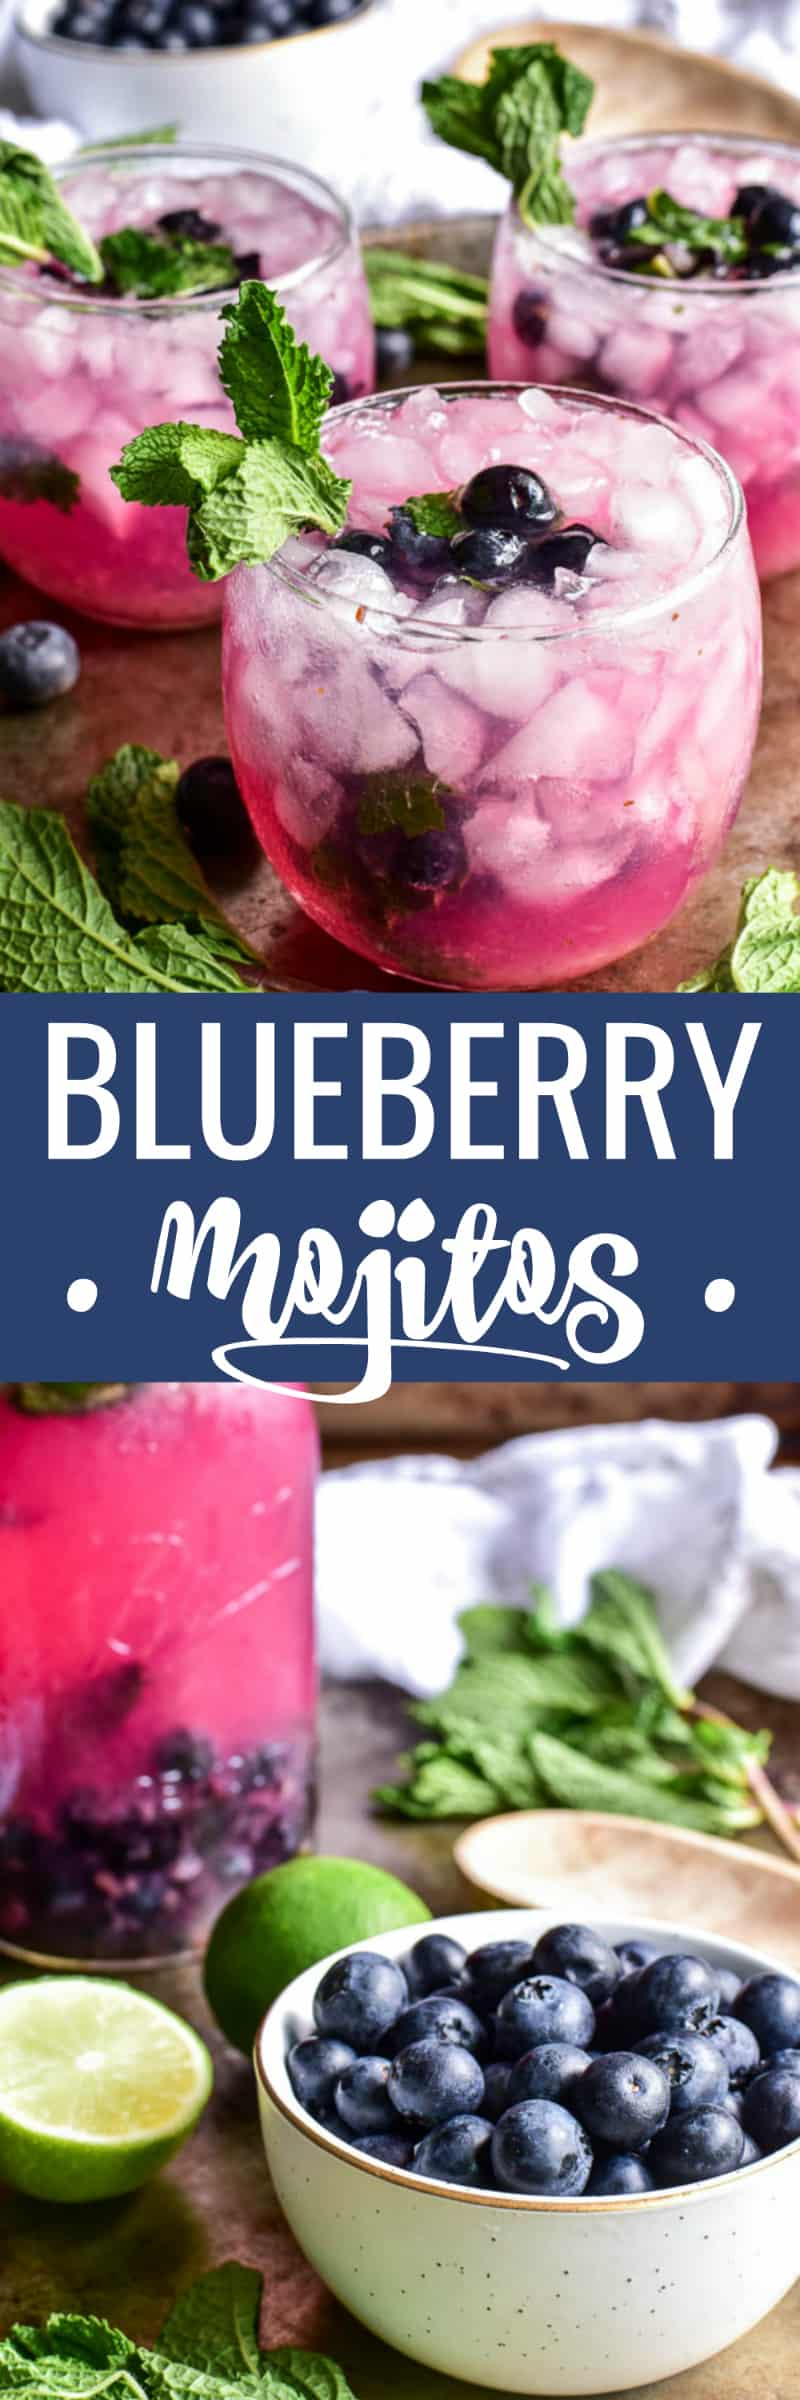 Collage image of Blueberry Mojitos and ingredients